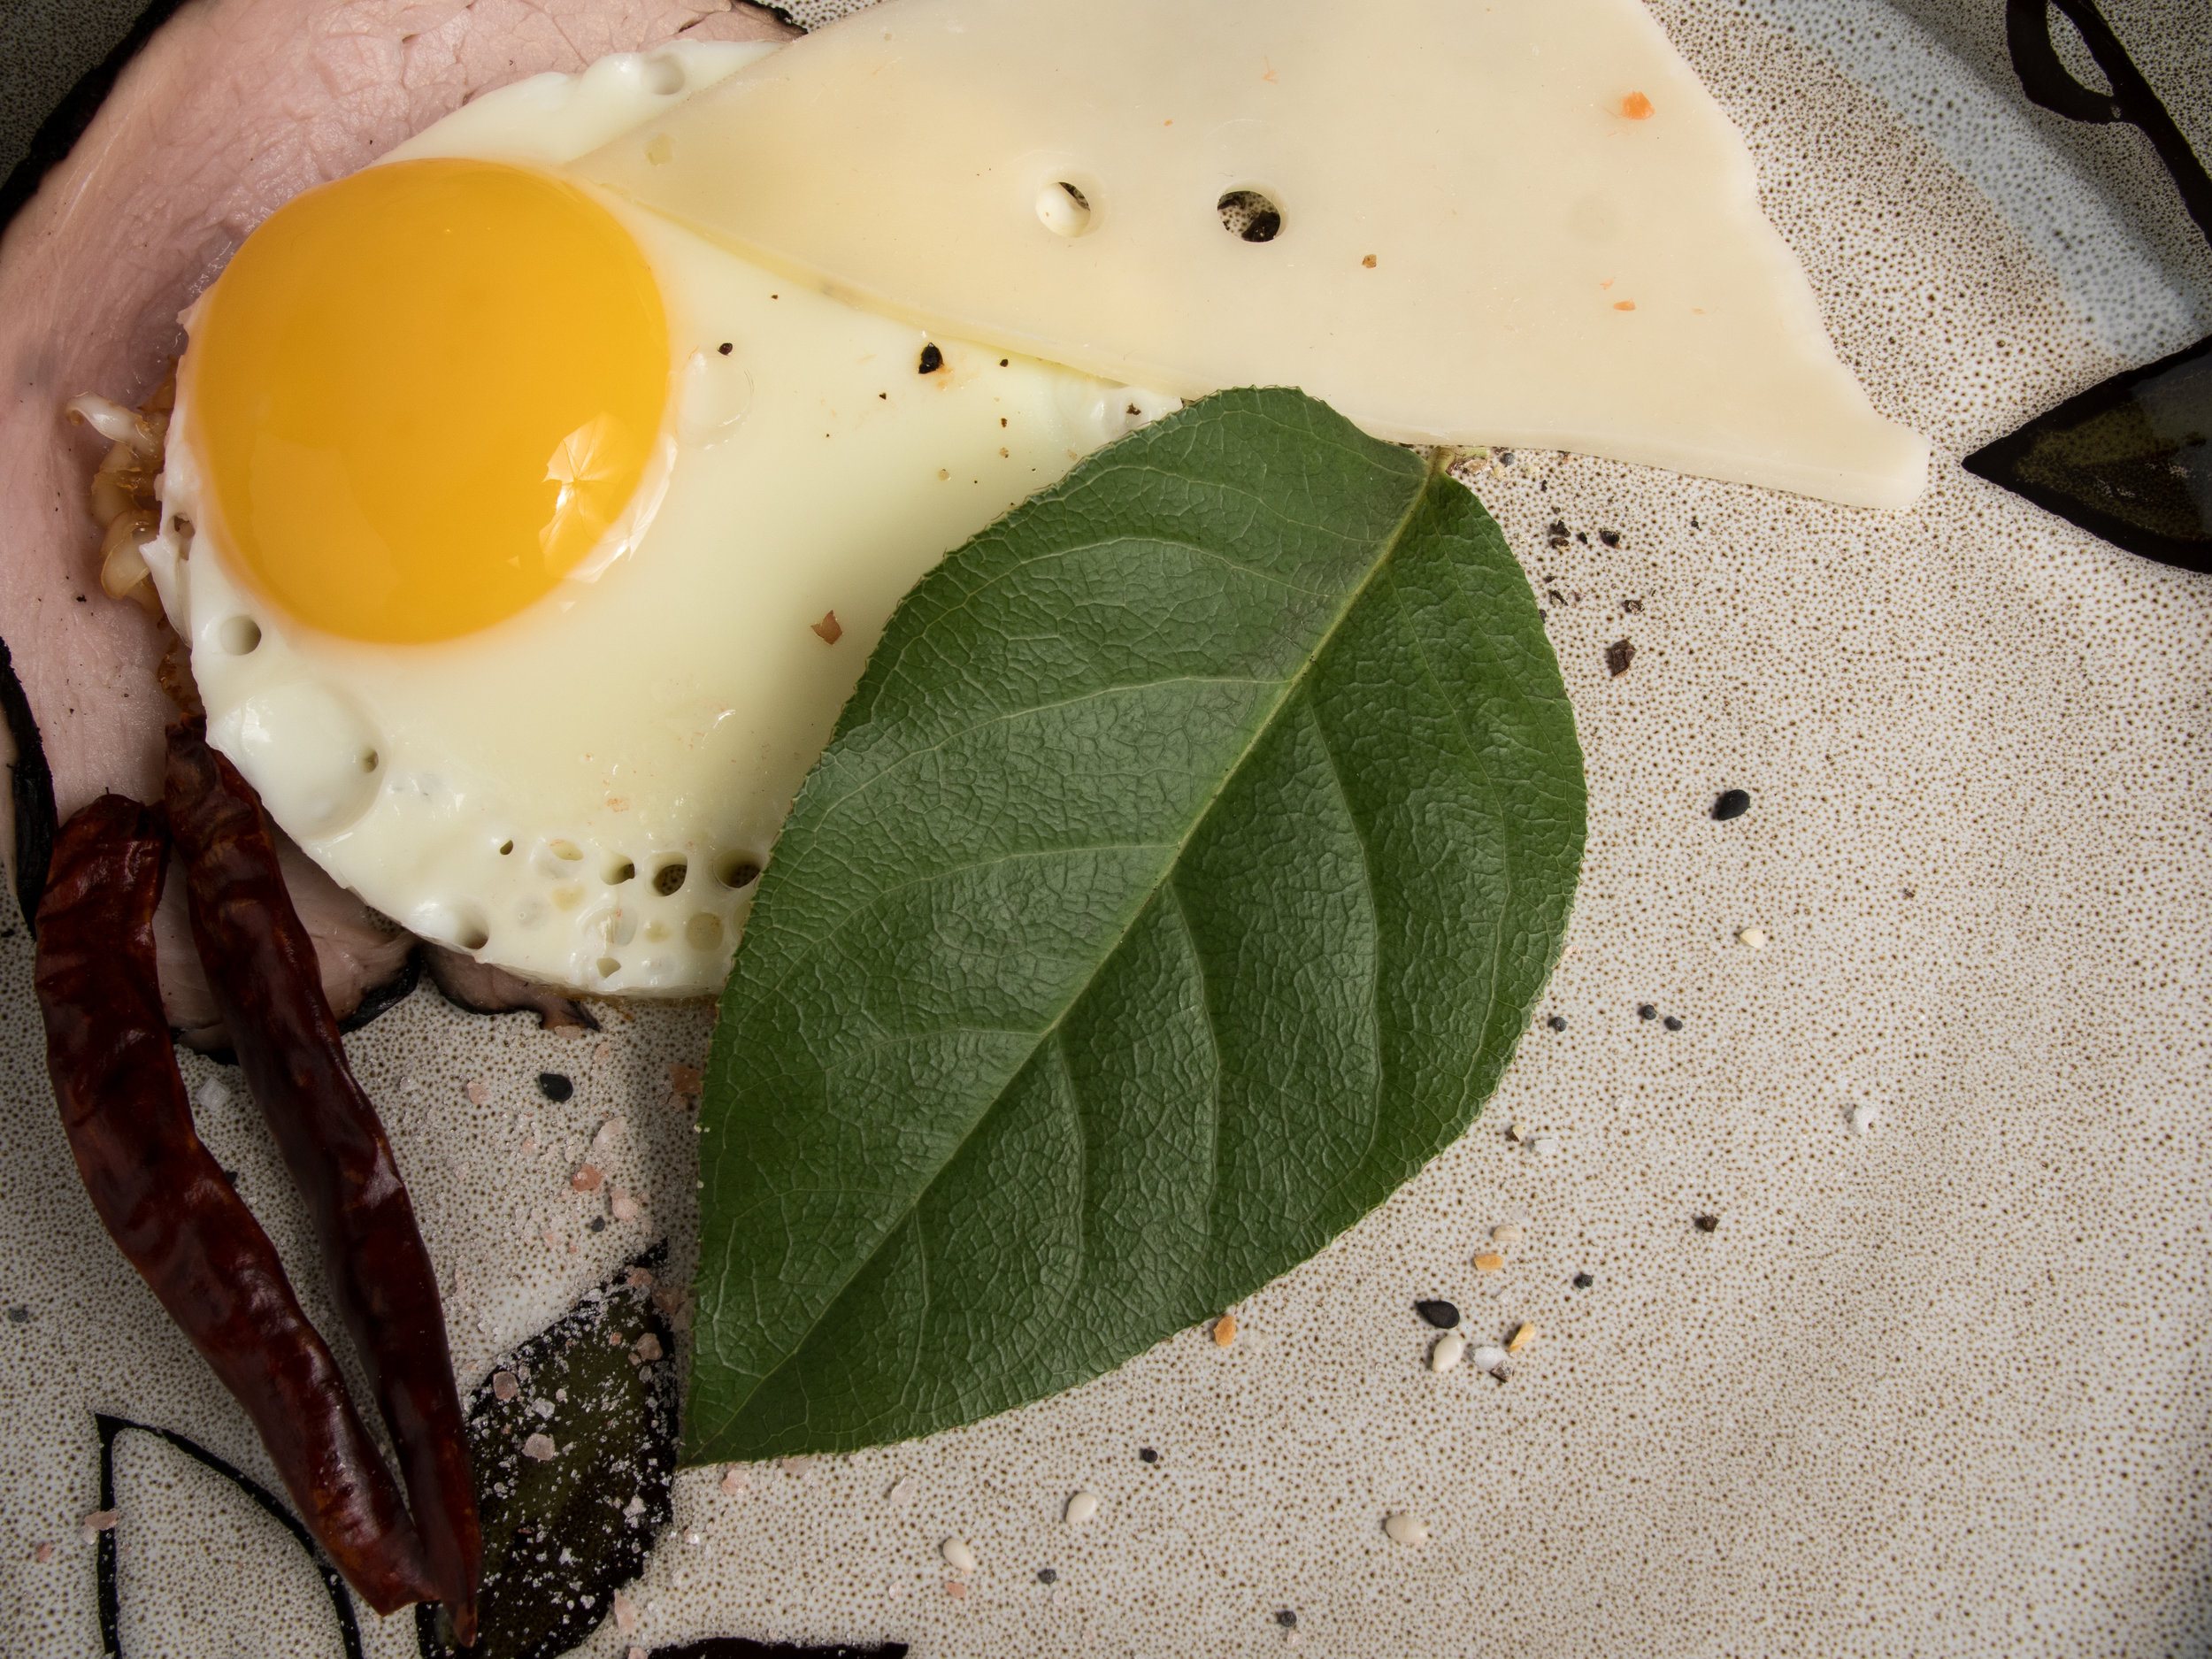 Produce - 9-14-18 - egg ham and leaf - 2 - 72ppi.jpg